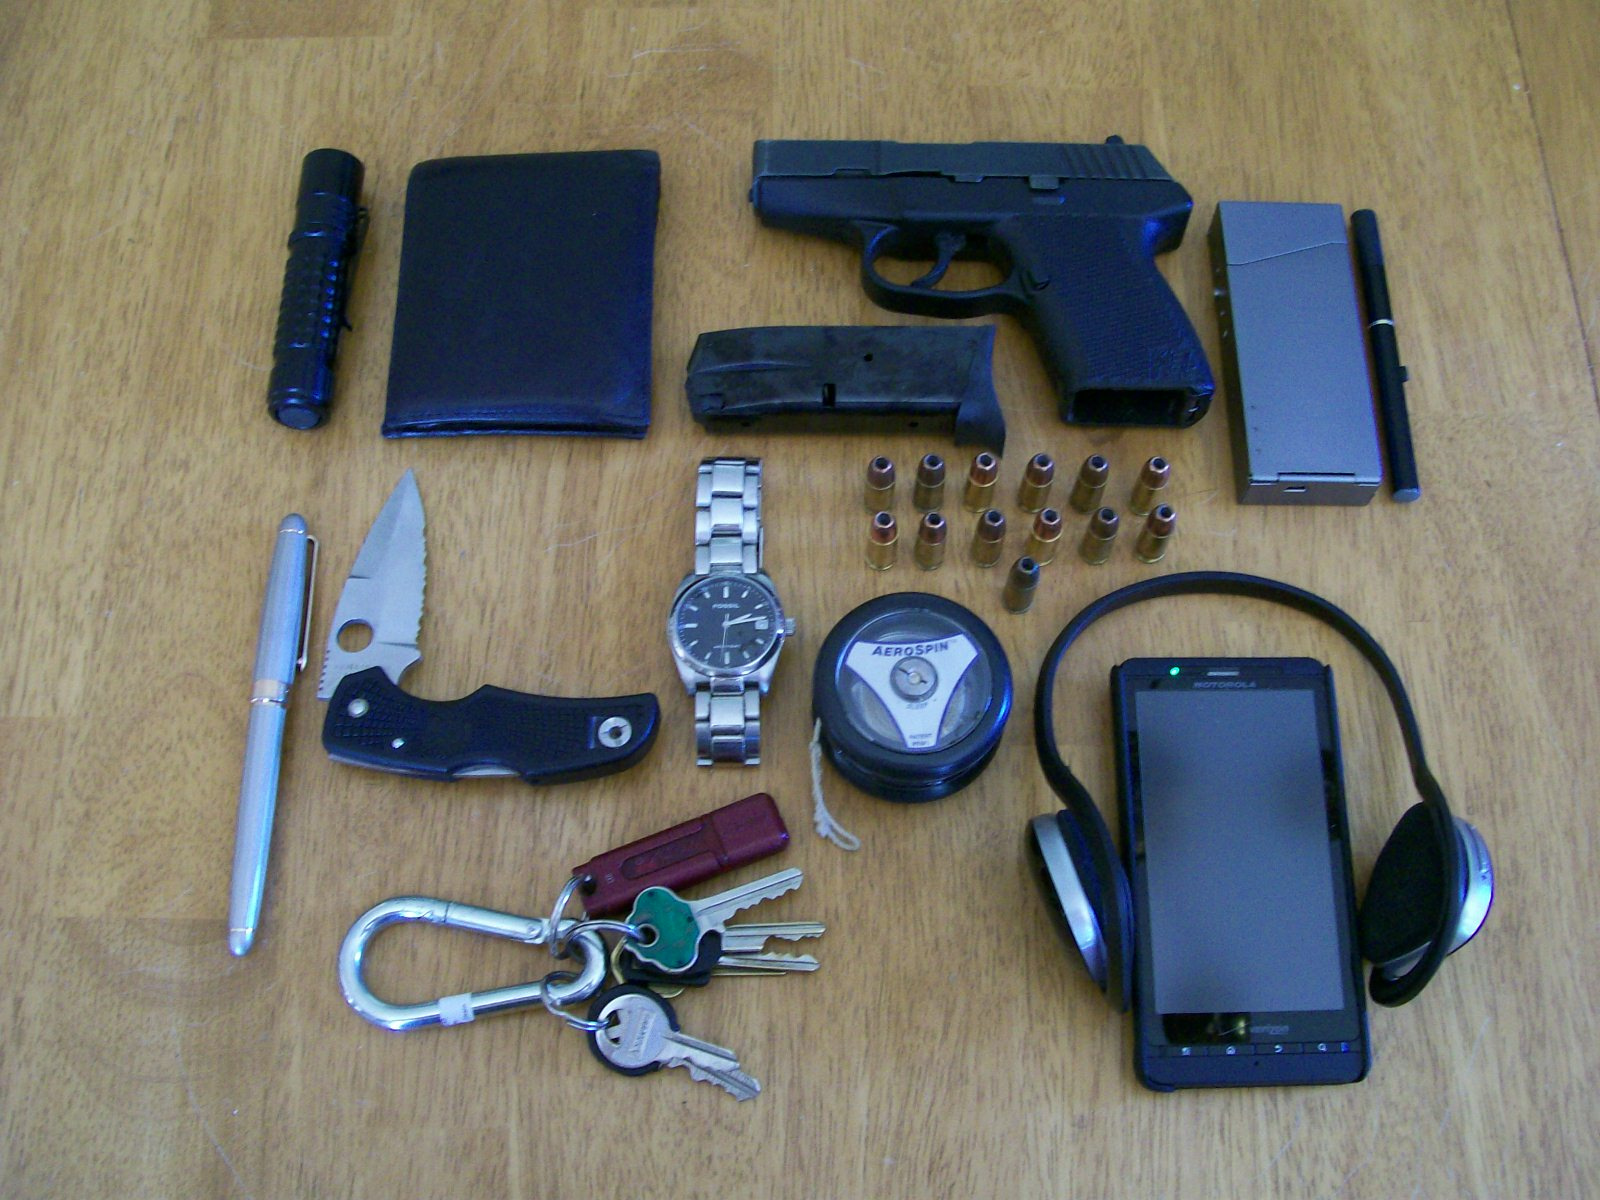 613 Media: Summer EDC (every day carry)